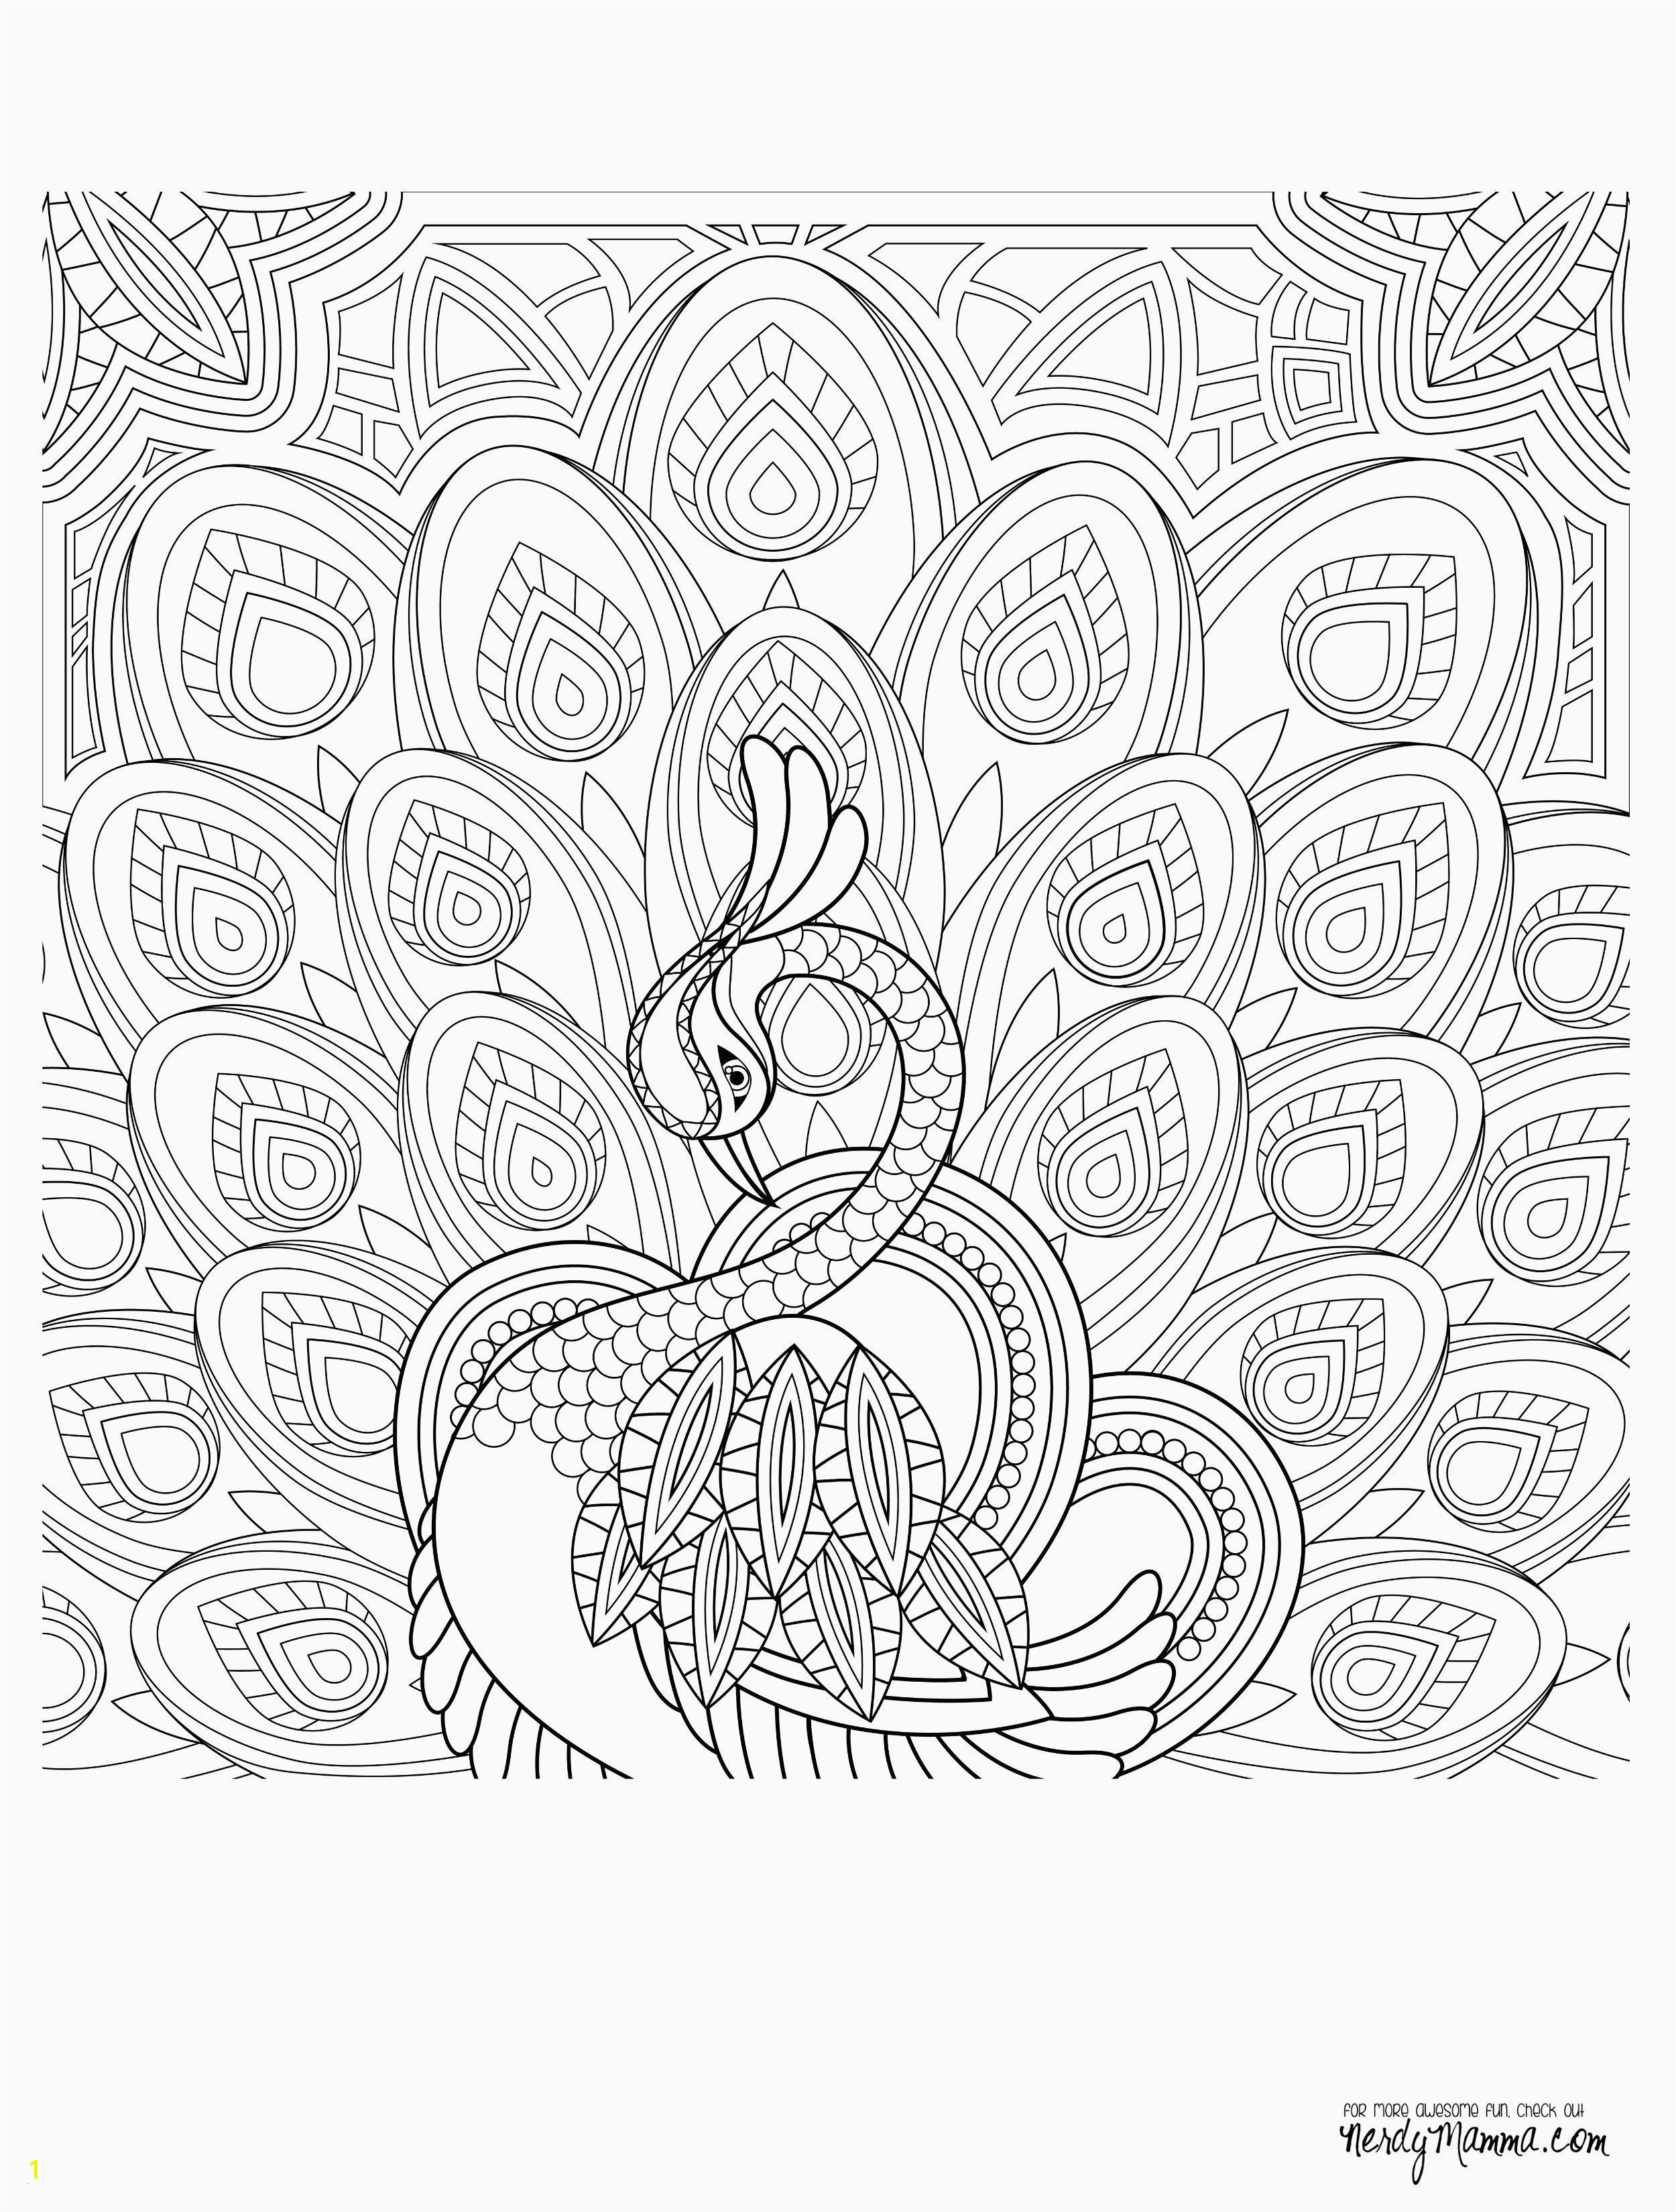 Fun Coloring Books Best Coloring Pages Book Beautiful Coloring